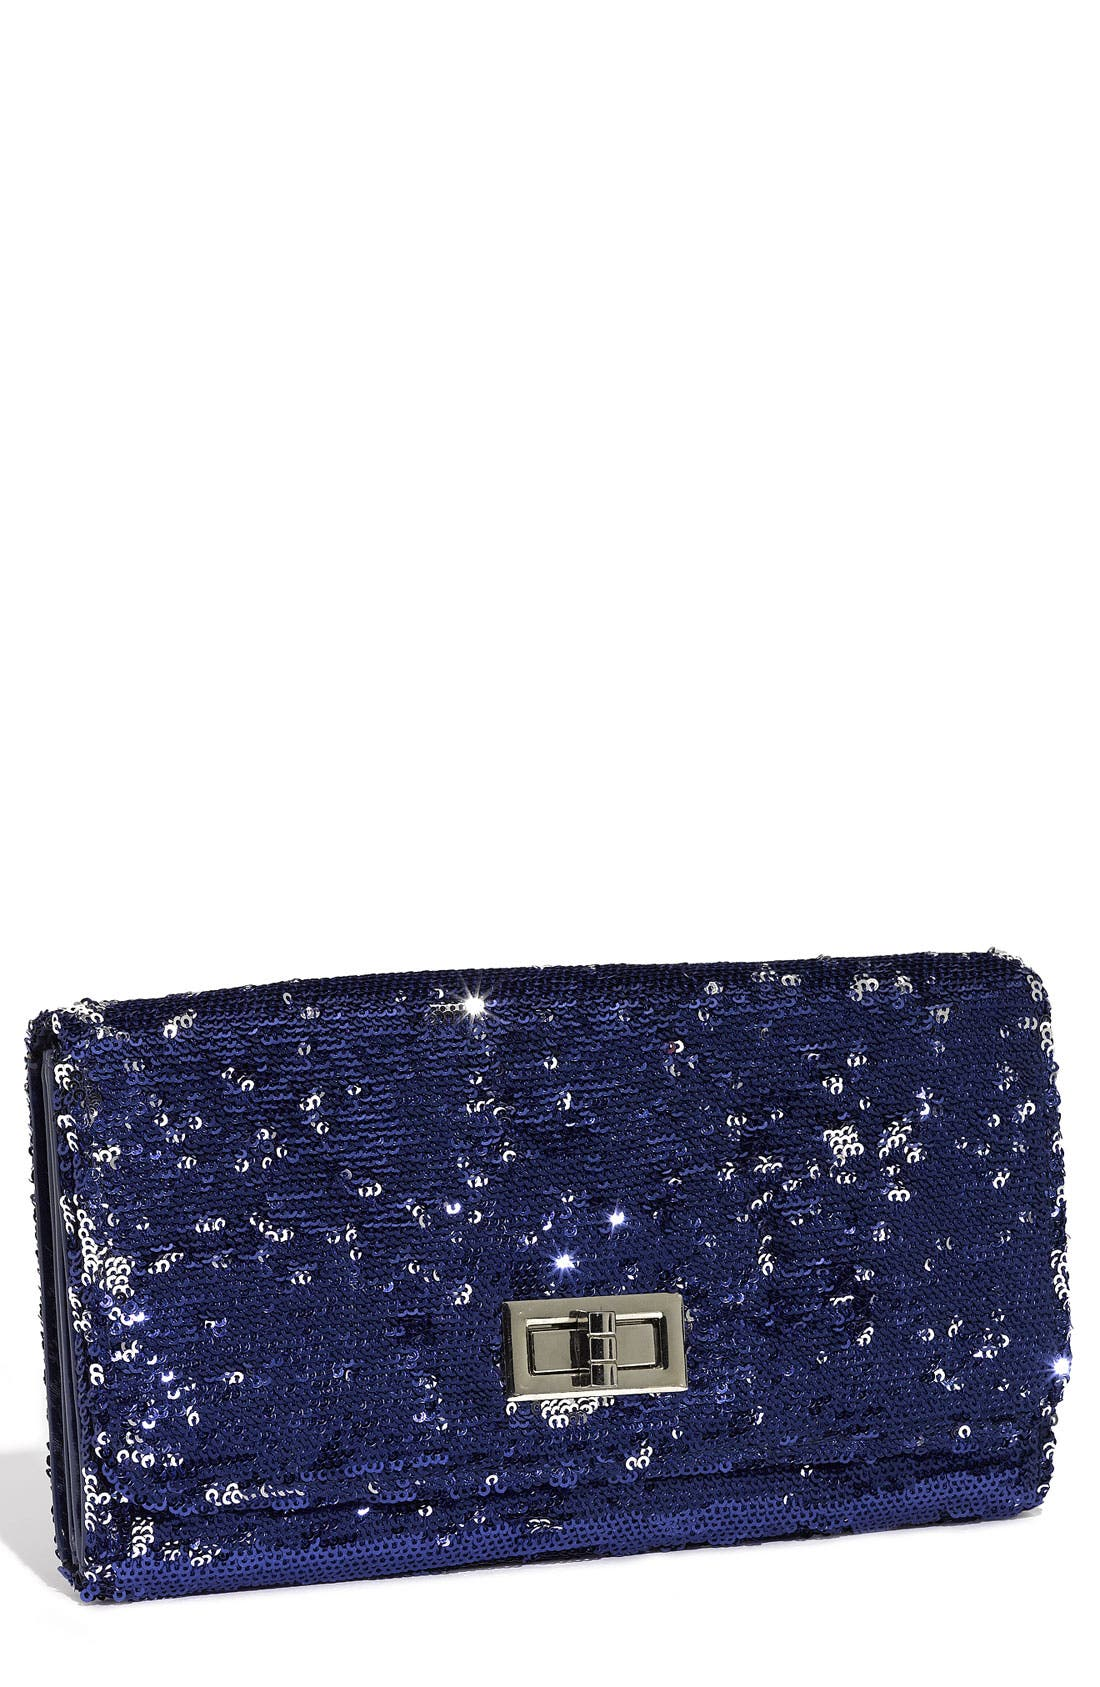 Main Image - Top Choice Sequin Clutch